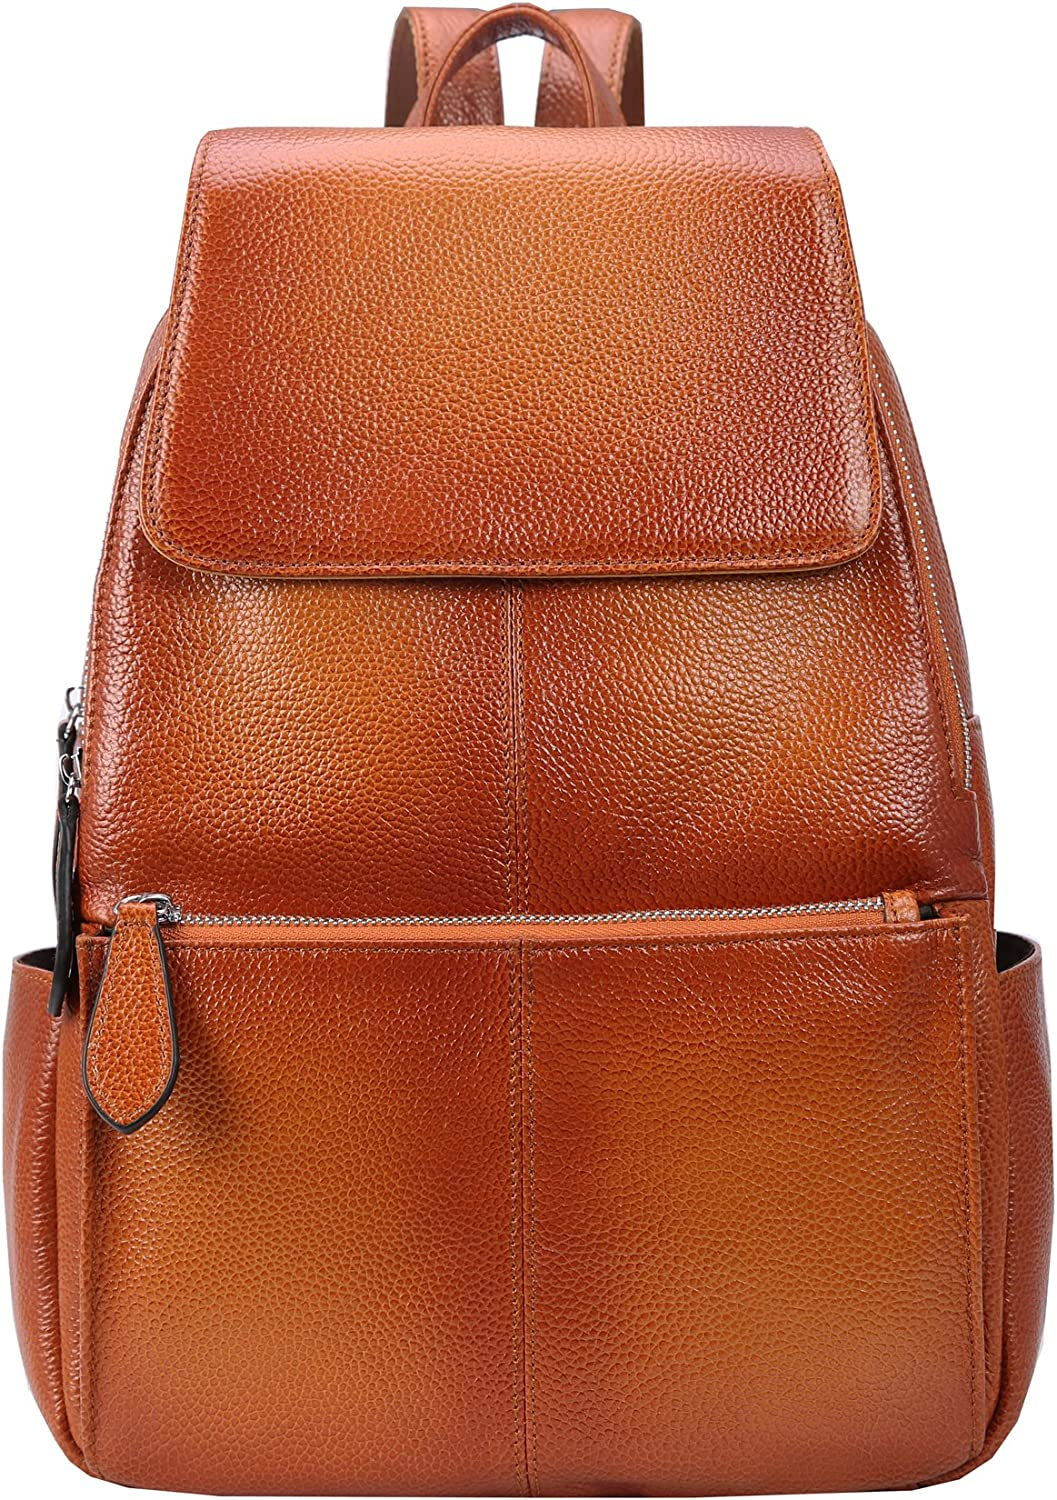 Black-R Heshe Womens Leather Backpack Casual Daypack Ladies Fashion Bag